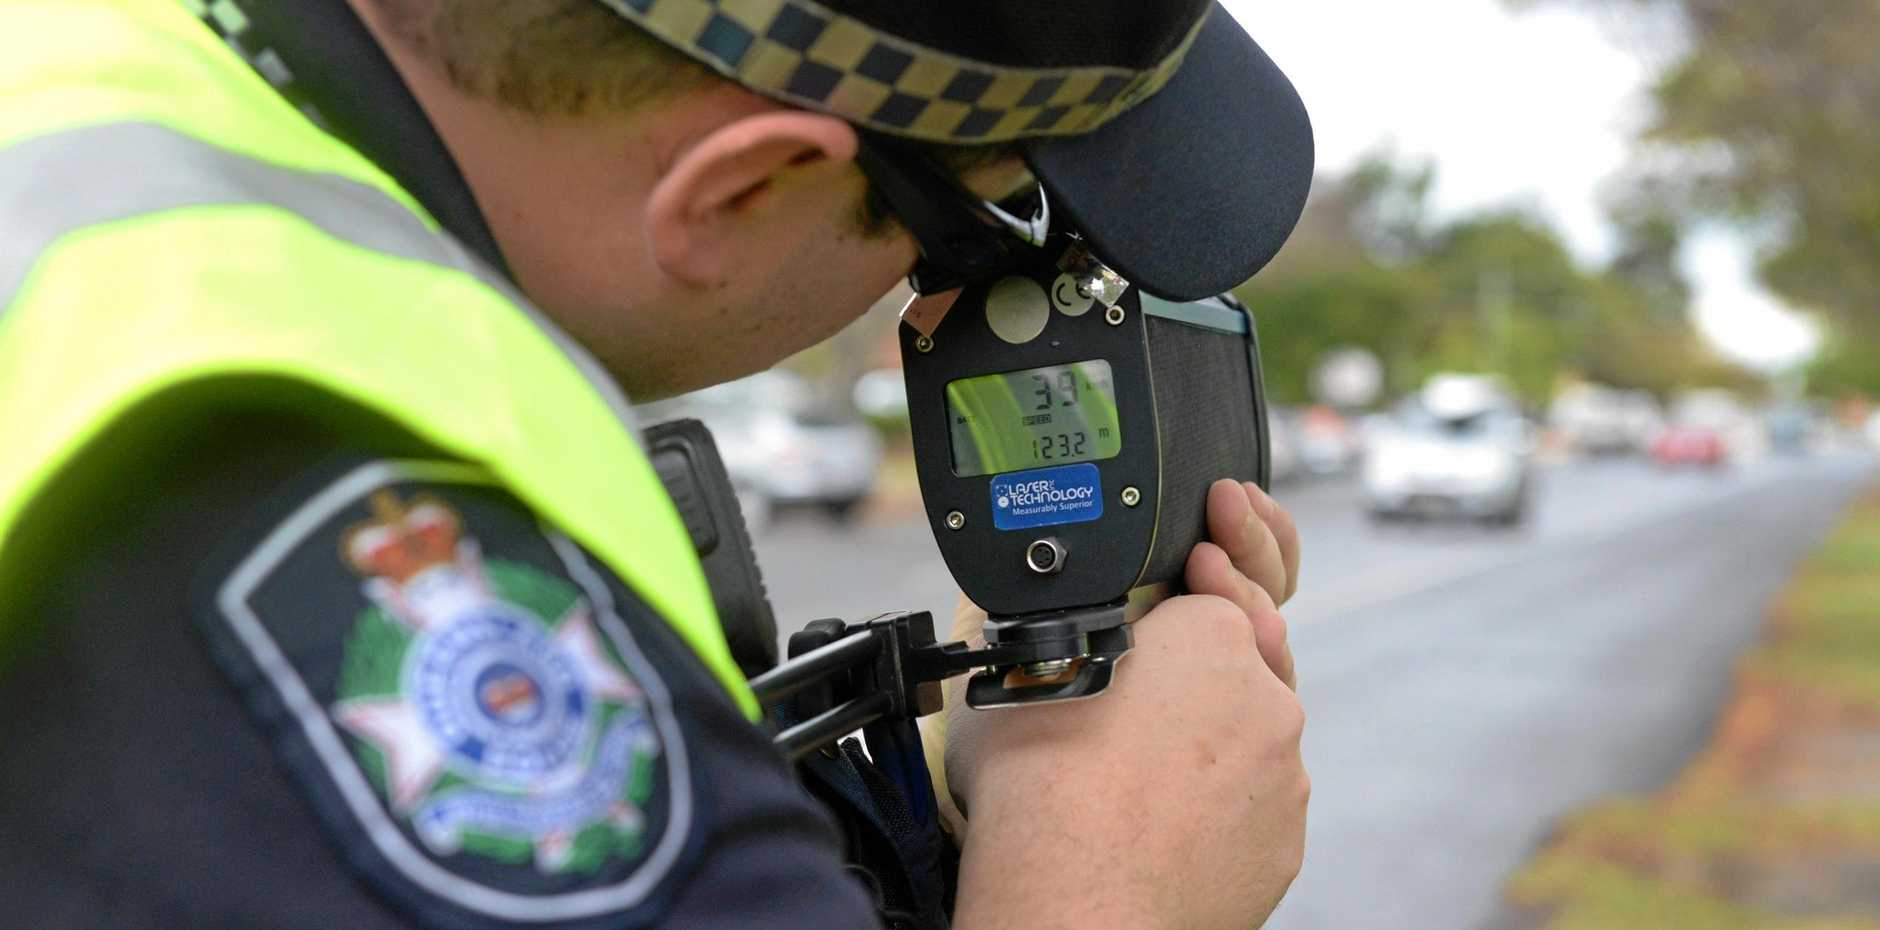 Ahead of Road Safety Week, police have slammed the behaviour of an erratic driver.